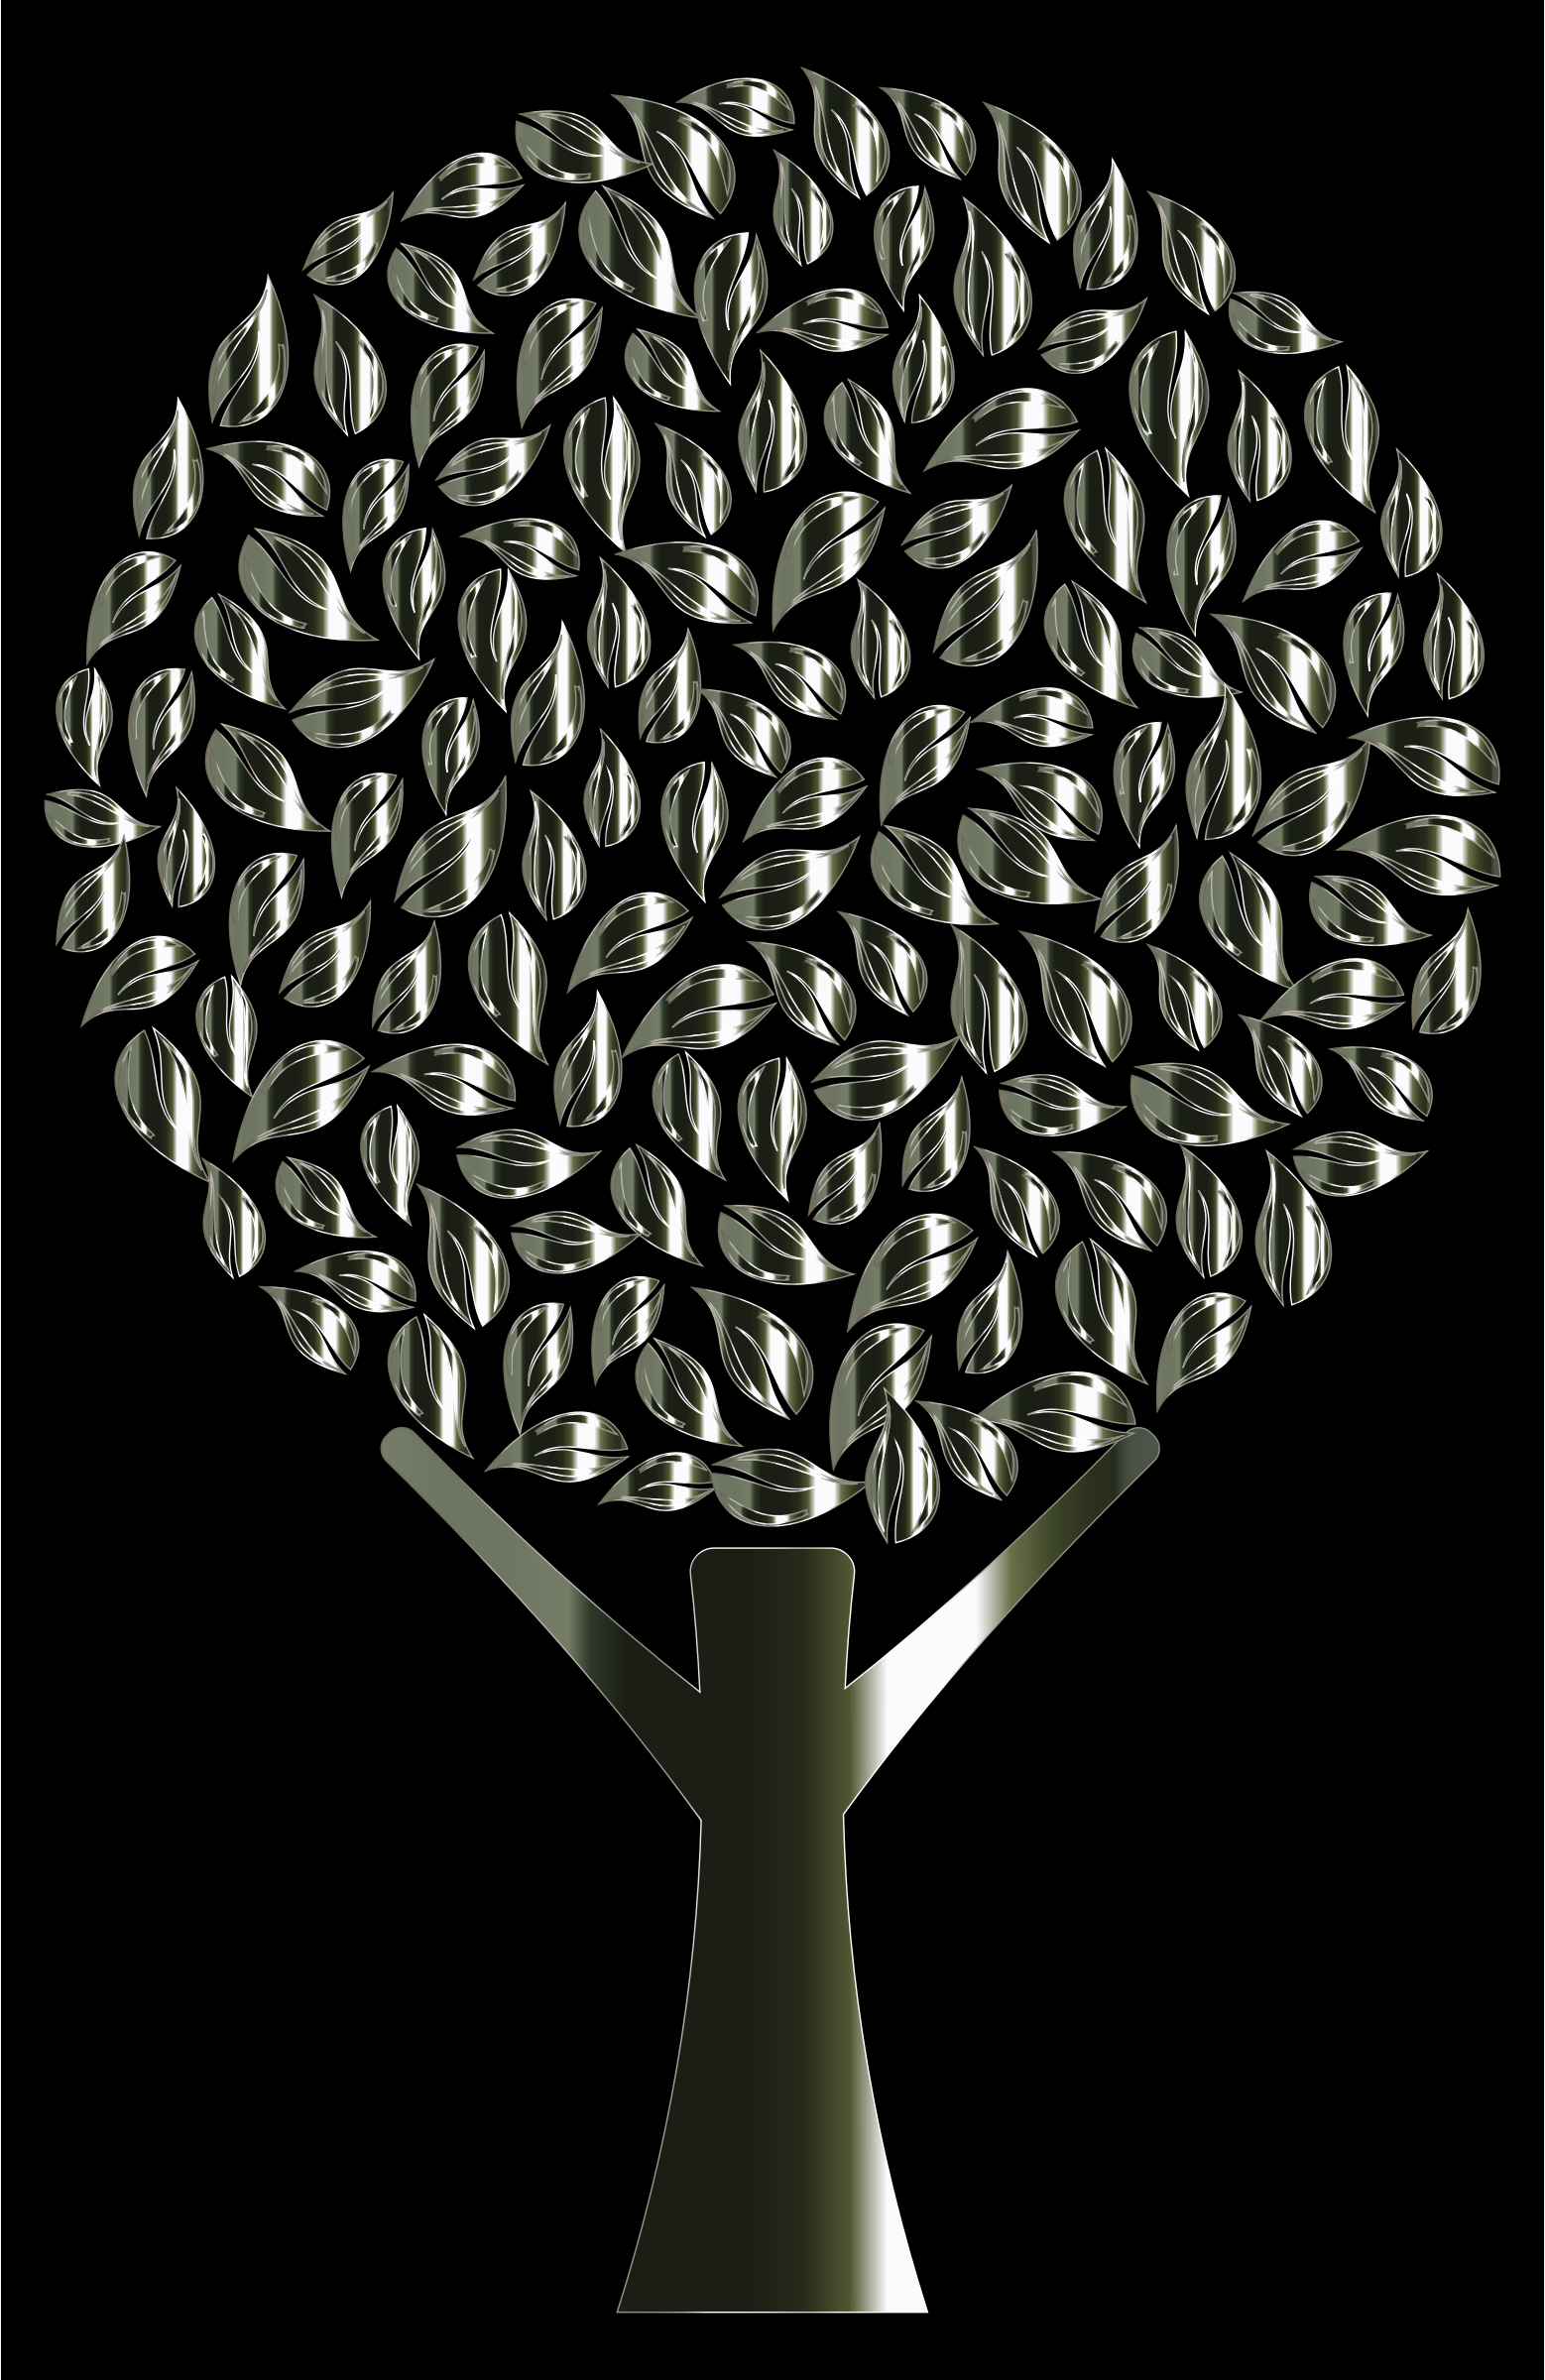 Polished Obsidian Abstract Tree by GDJ